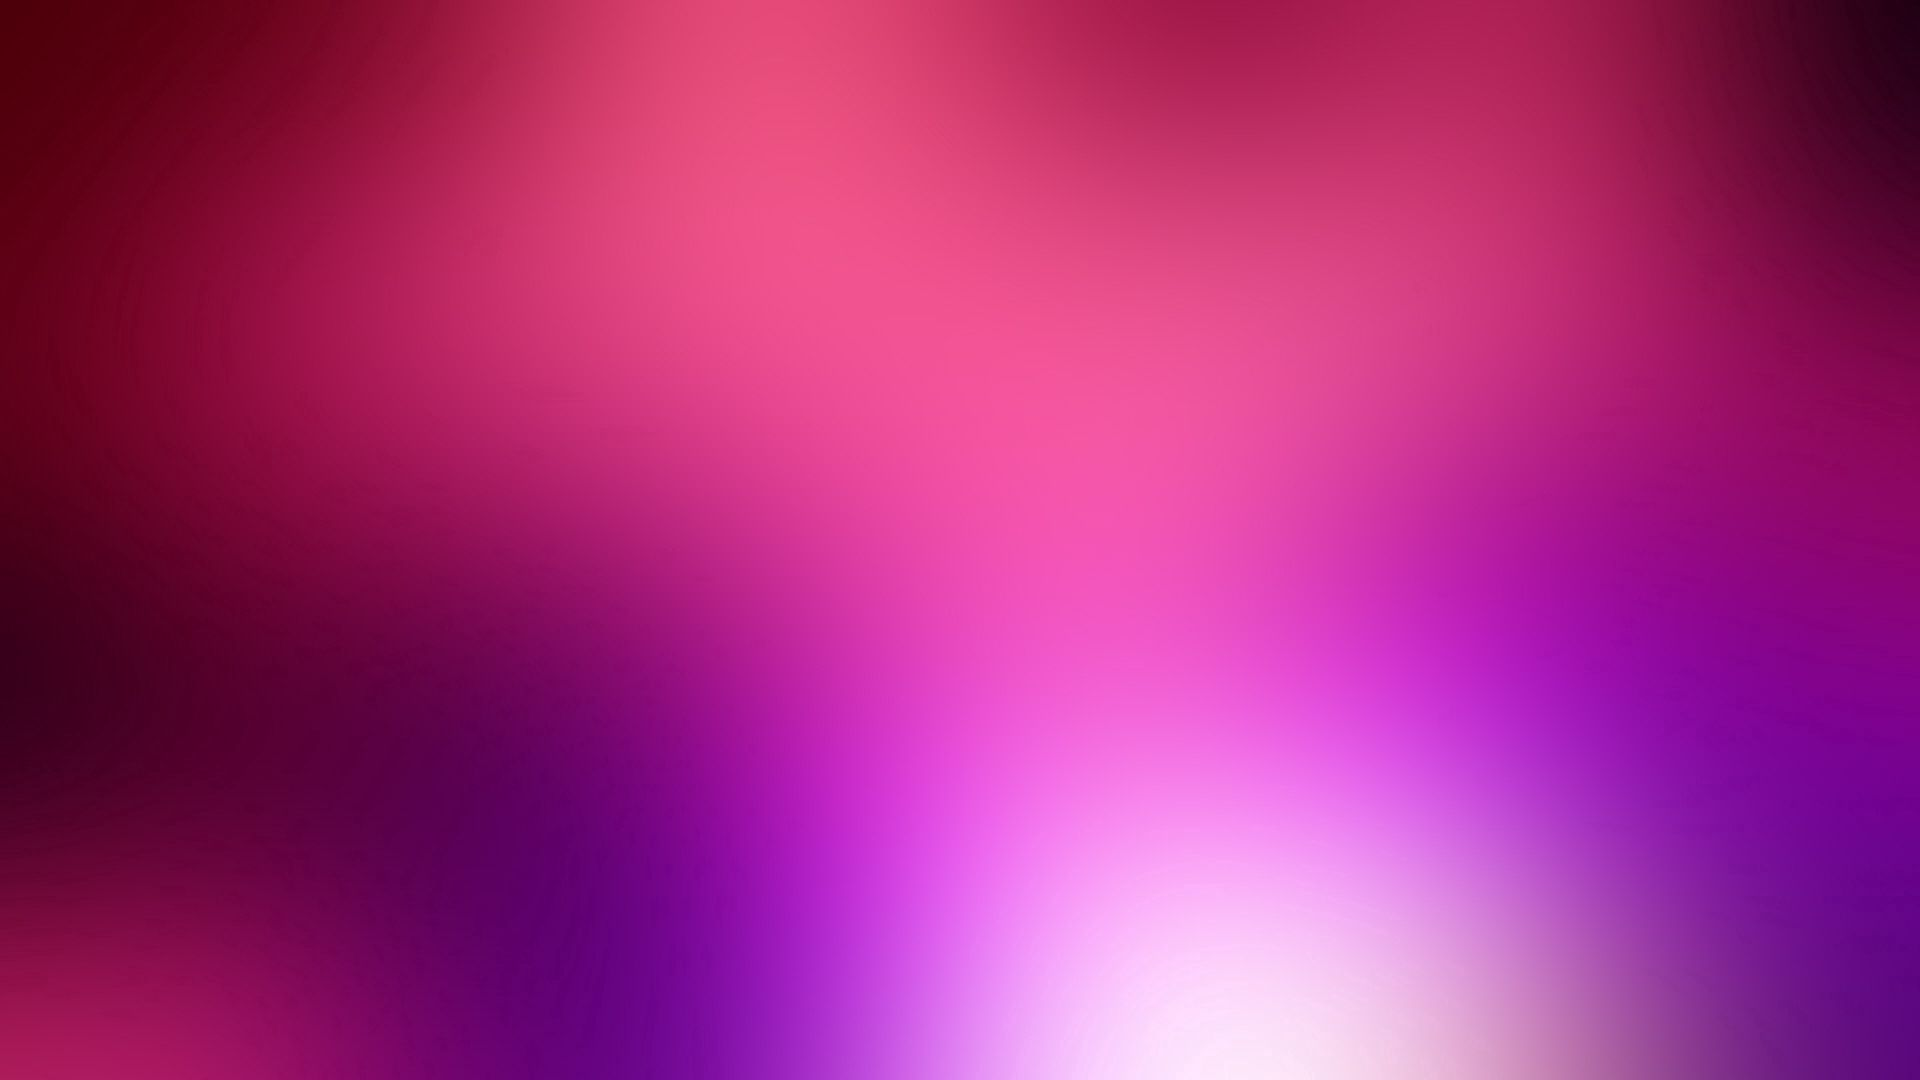 Download Wallpaper 1920x1080 Pink Purple Light Abstraction Hd